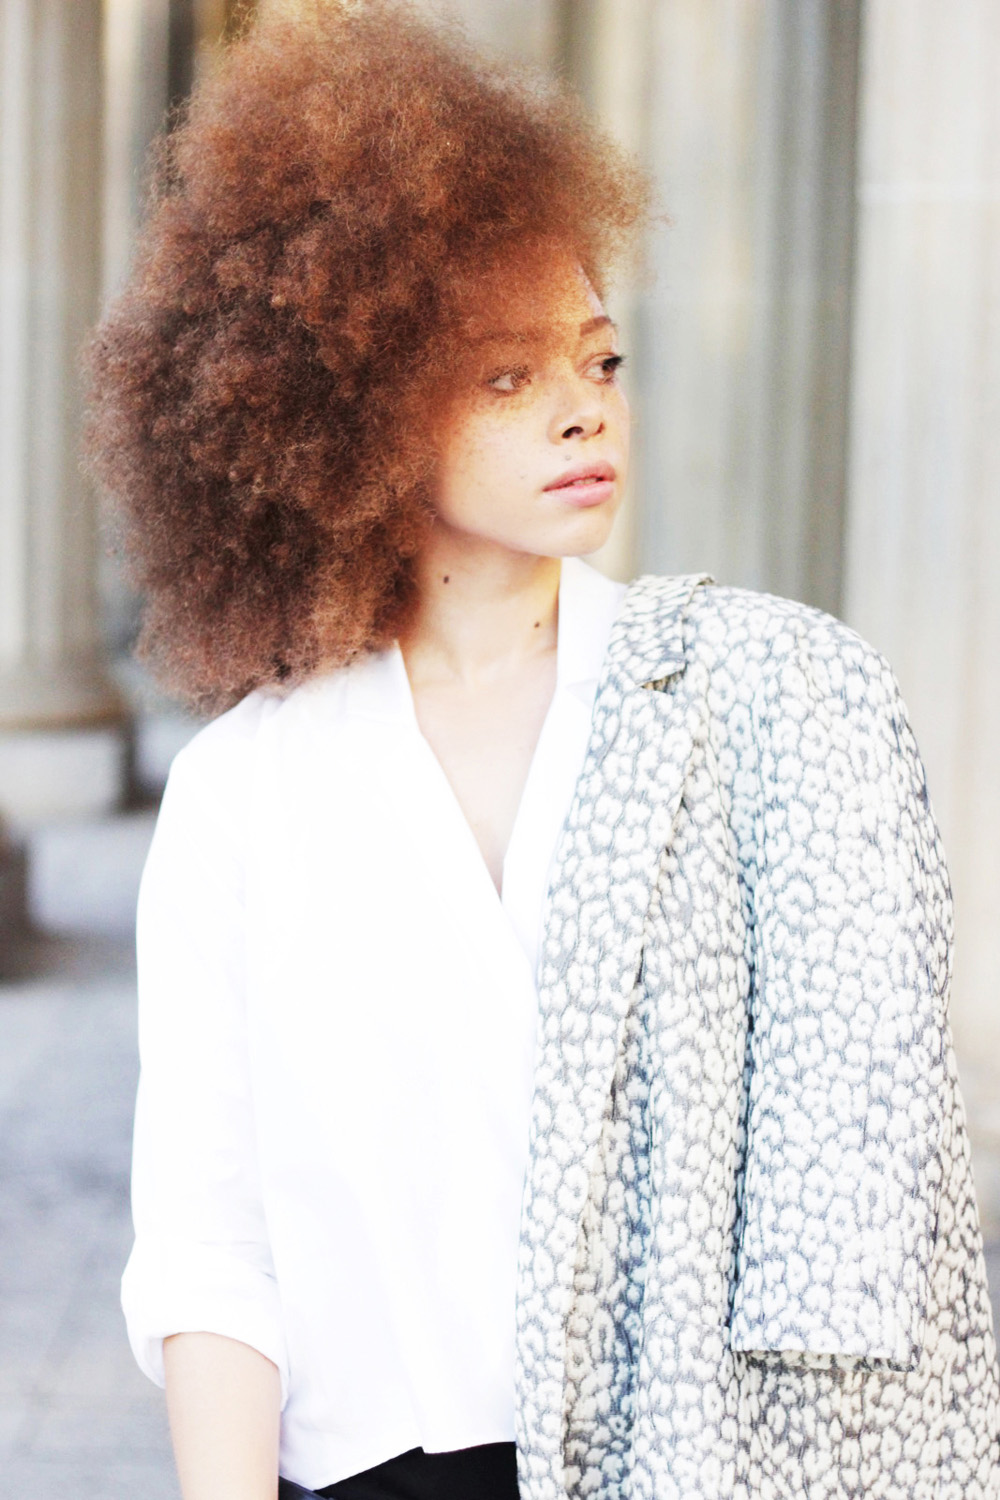 fatimayarie-afro-freckles-redcurls-naturalhair-patterned-blazer-berlinfashionweek-img_1777